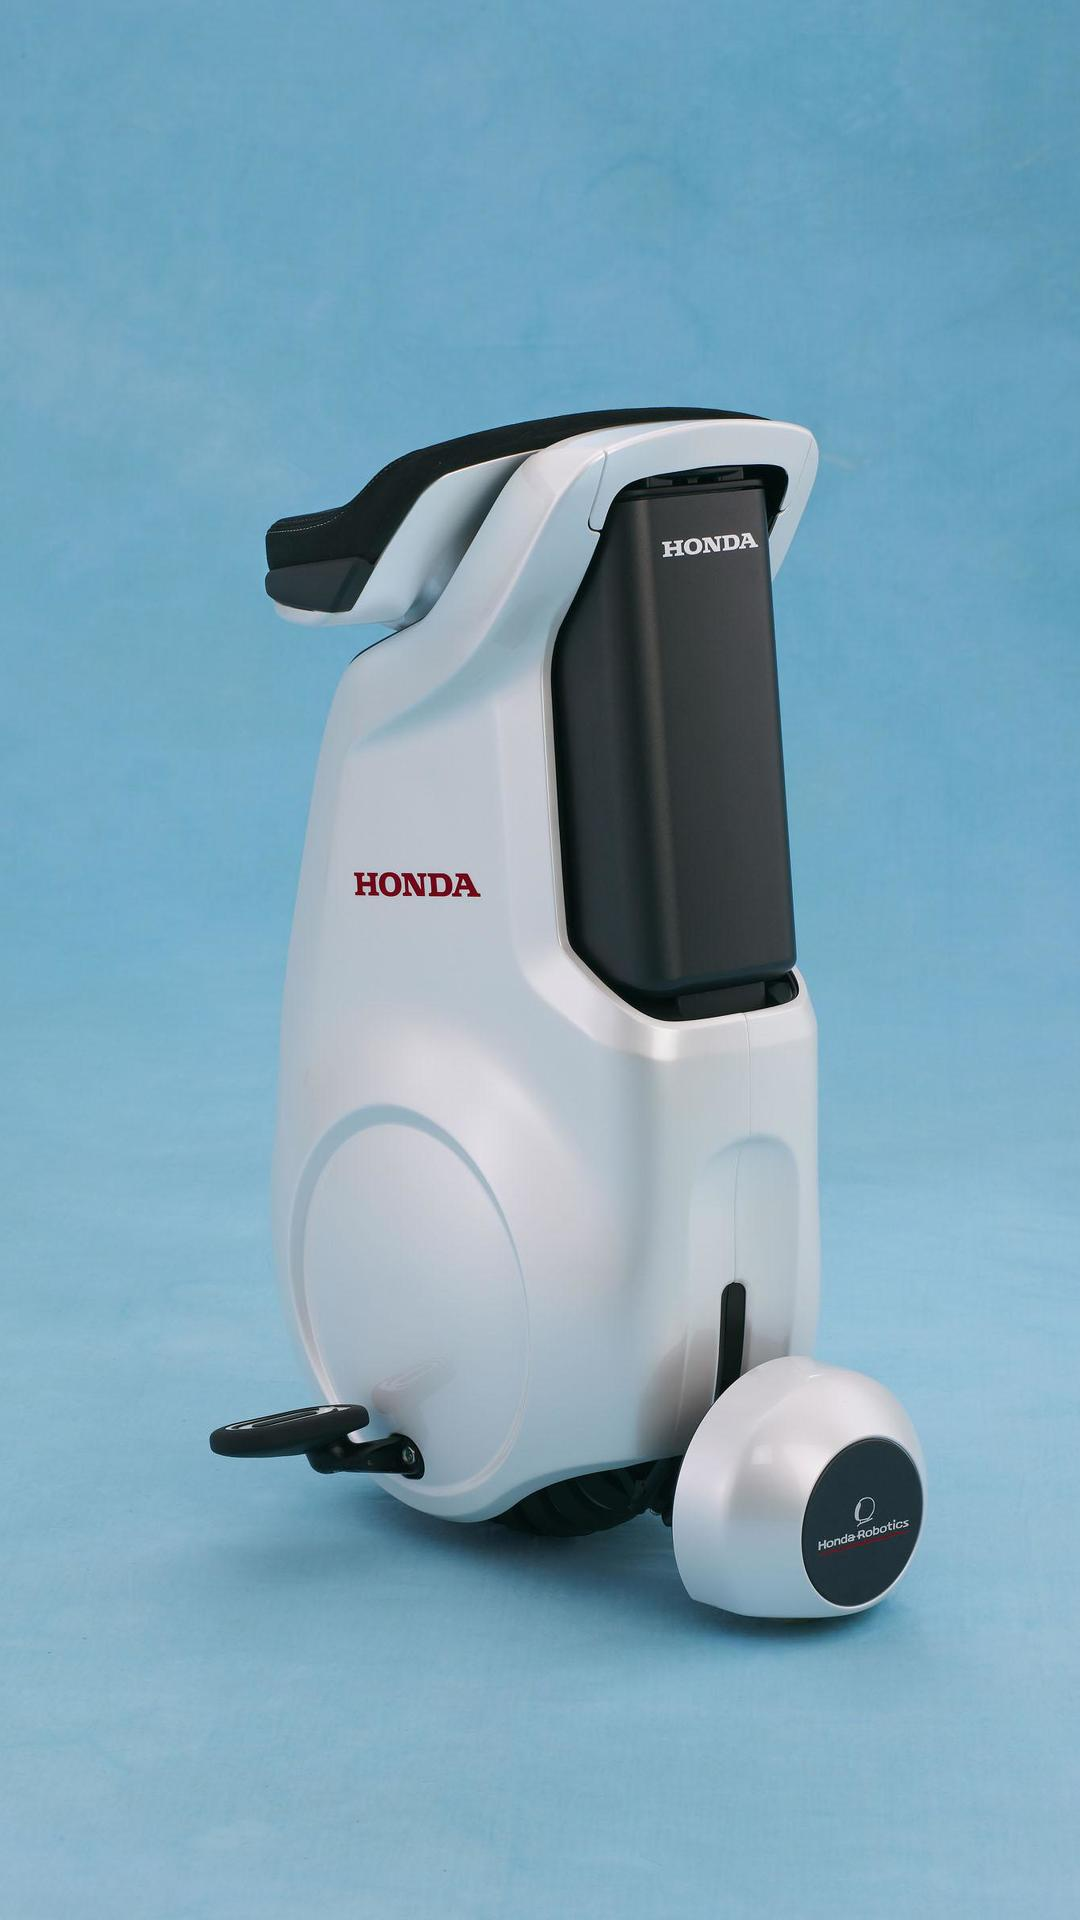 uni announced verge device ups for cub mobility segways indoor one personal the honda use